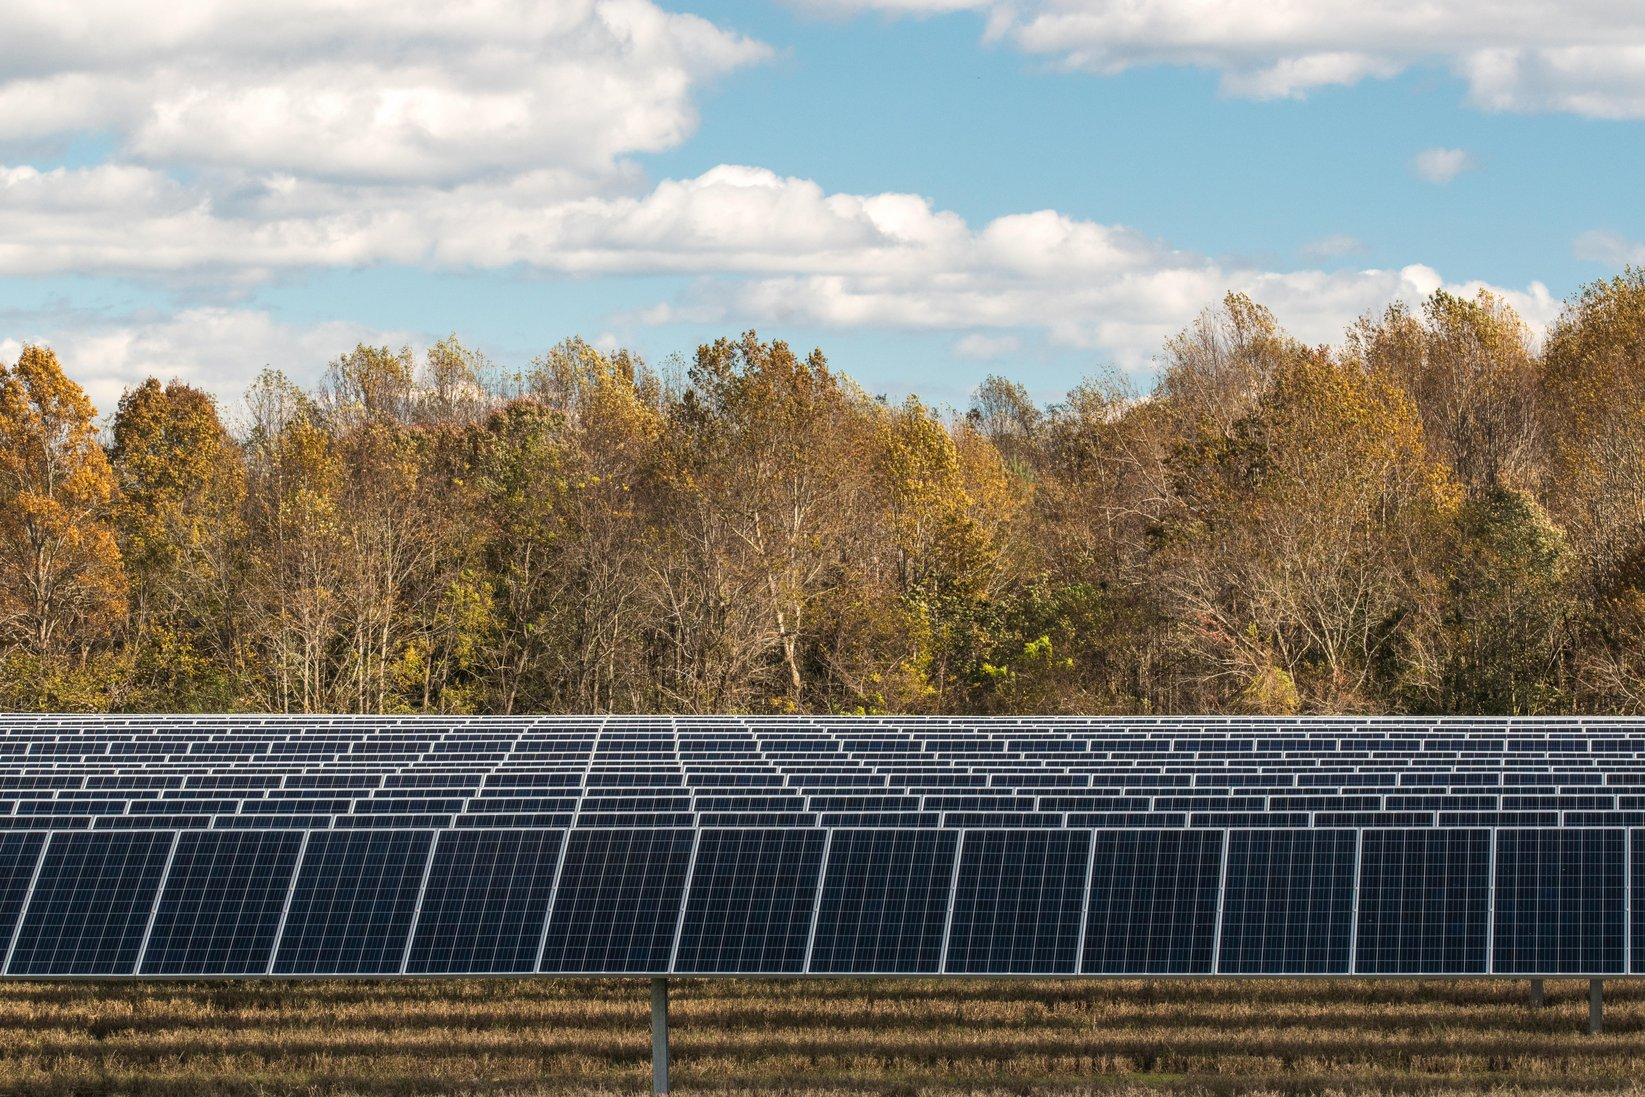 Solar panels on forest-bounded Virginia project site due to successful renewable energy permitting